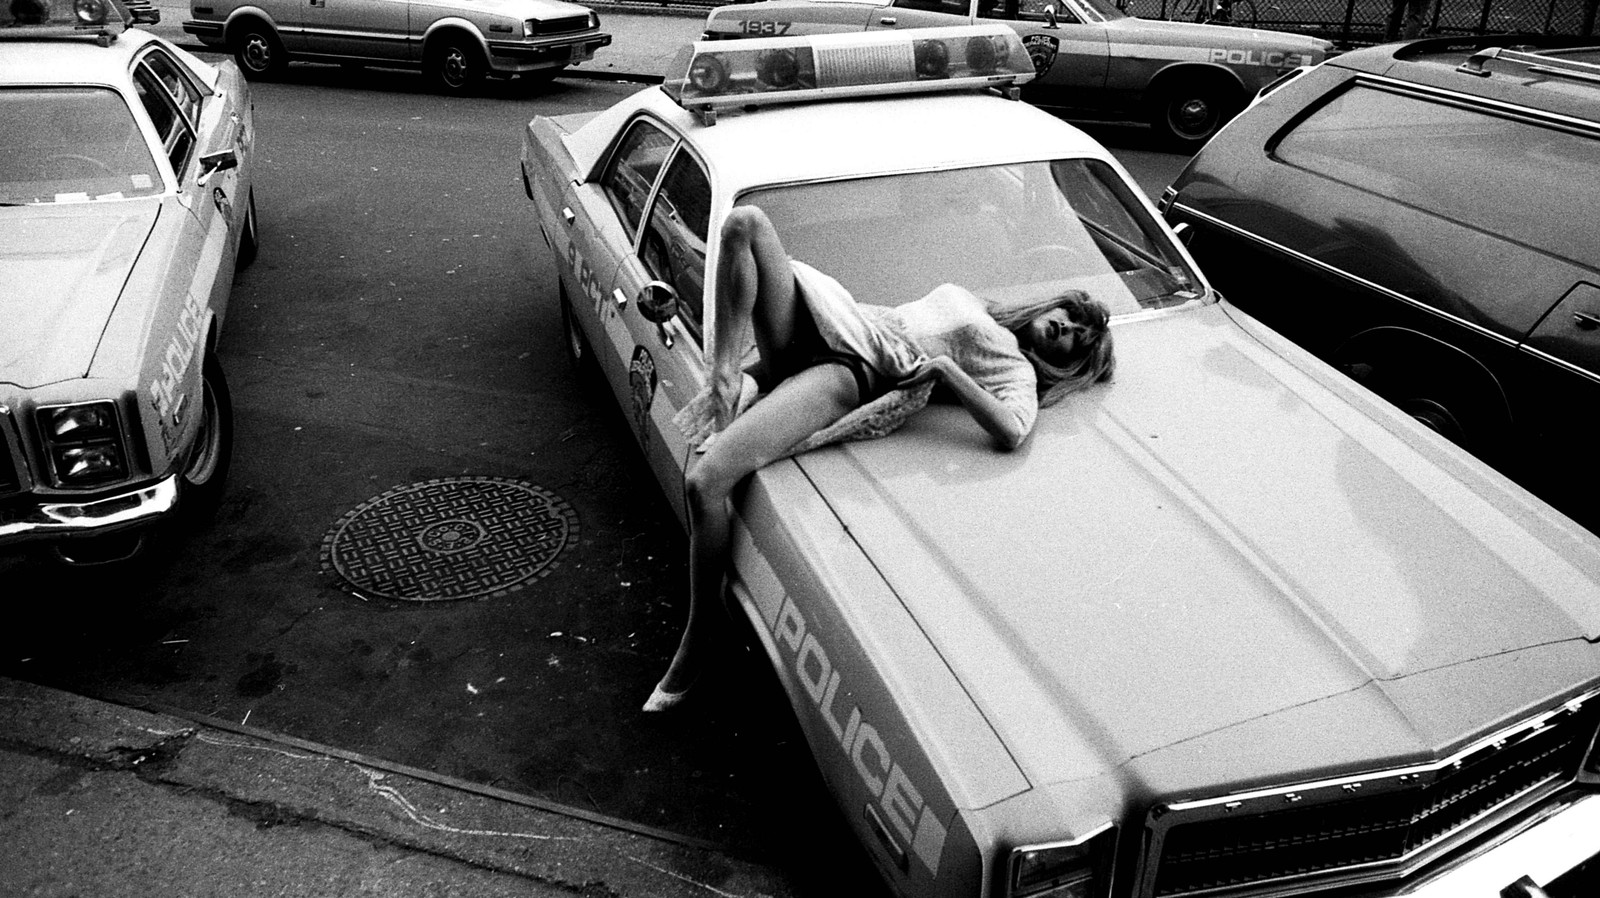 Underground Photos From New York's Seediest Years